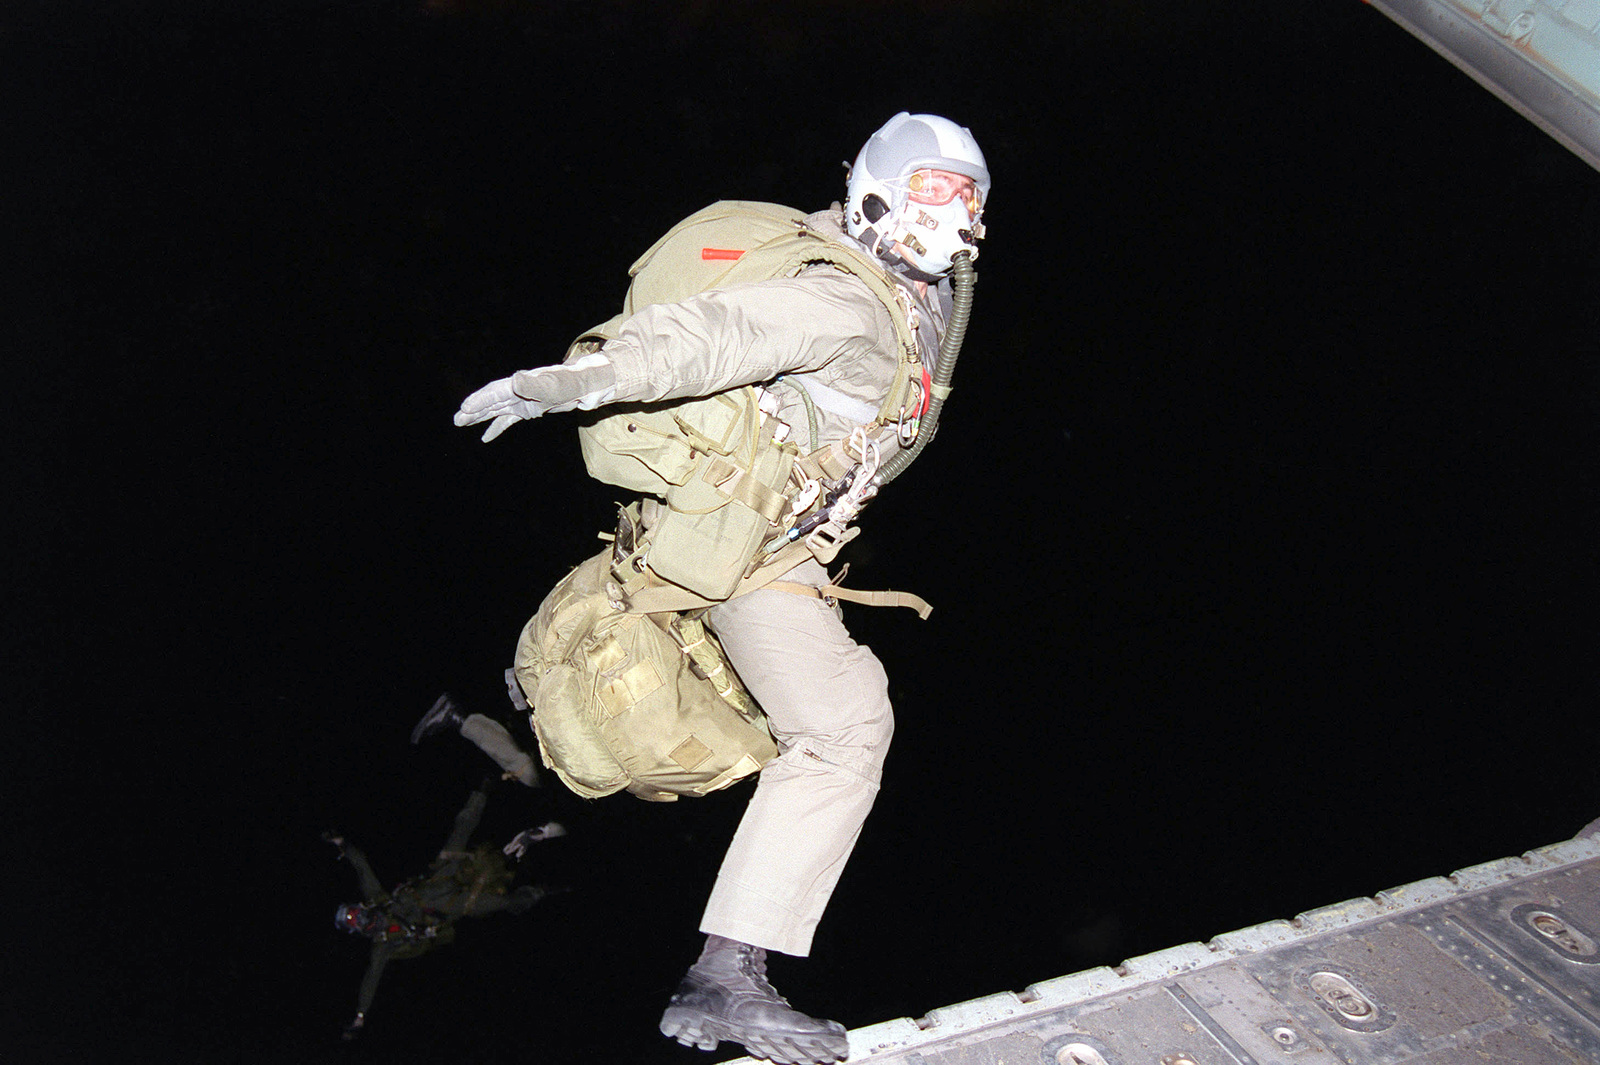 SPECIALIST First Class Brad Beauchamp, a jumpmaster from A Company, 2nd Battalion, 3rd Special Forces Group, Fort Bragg, North Carolina, performs a pivot poised exit on a night jump with oxygen and equipment, at 25,000 feet above Roosevelt Roads Naval Air Station, Puerto Rico